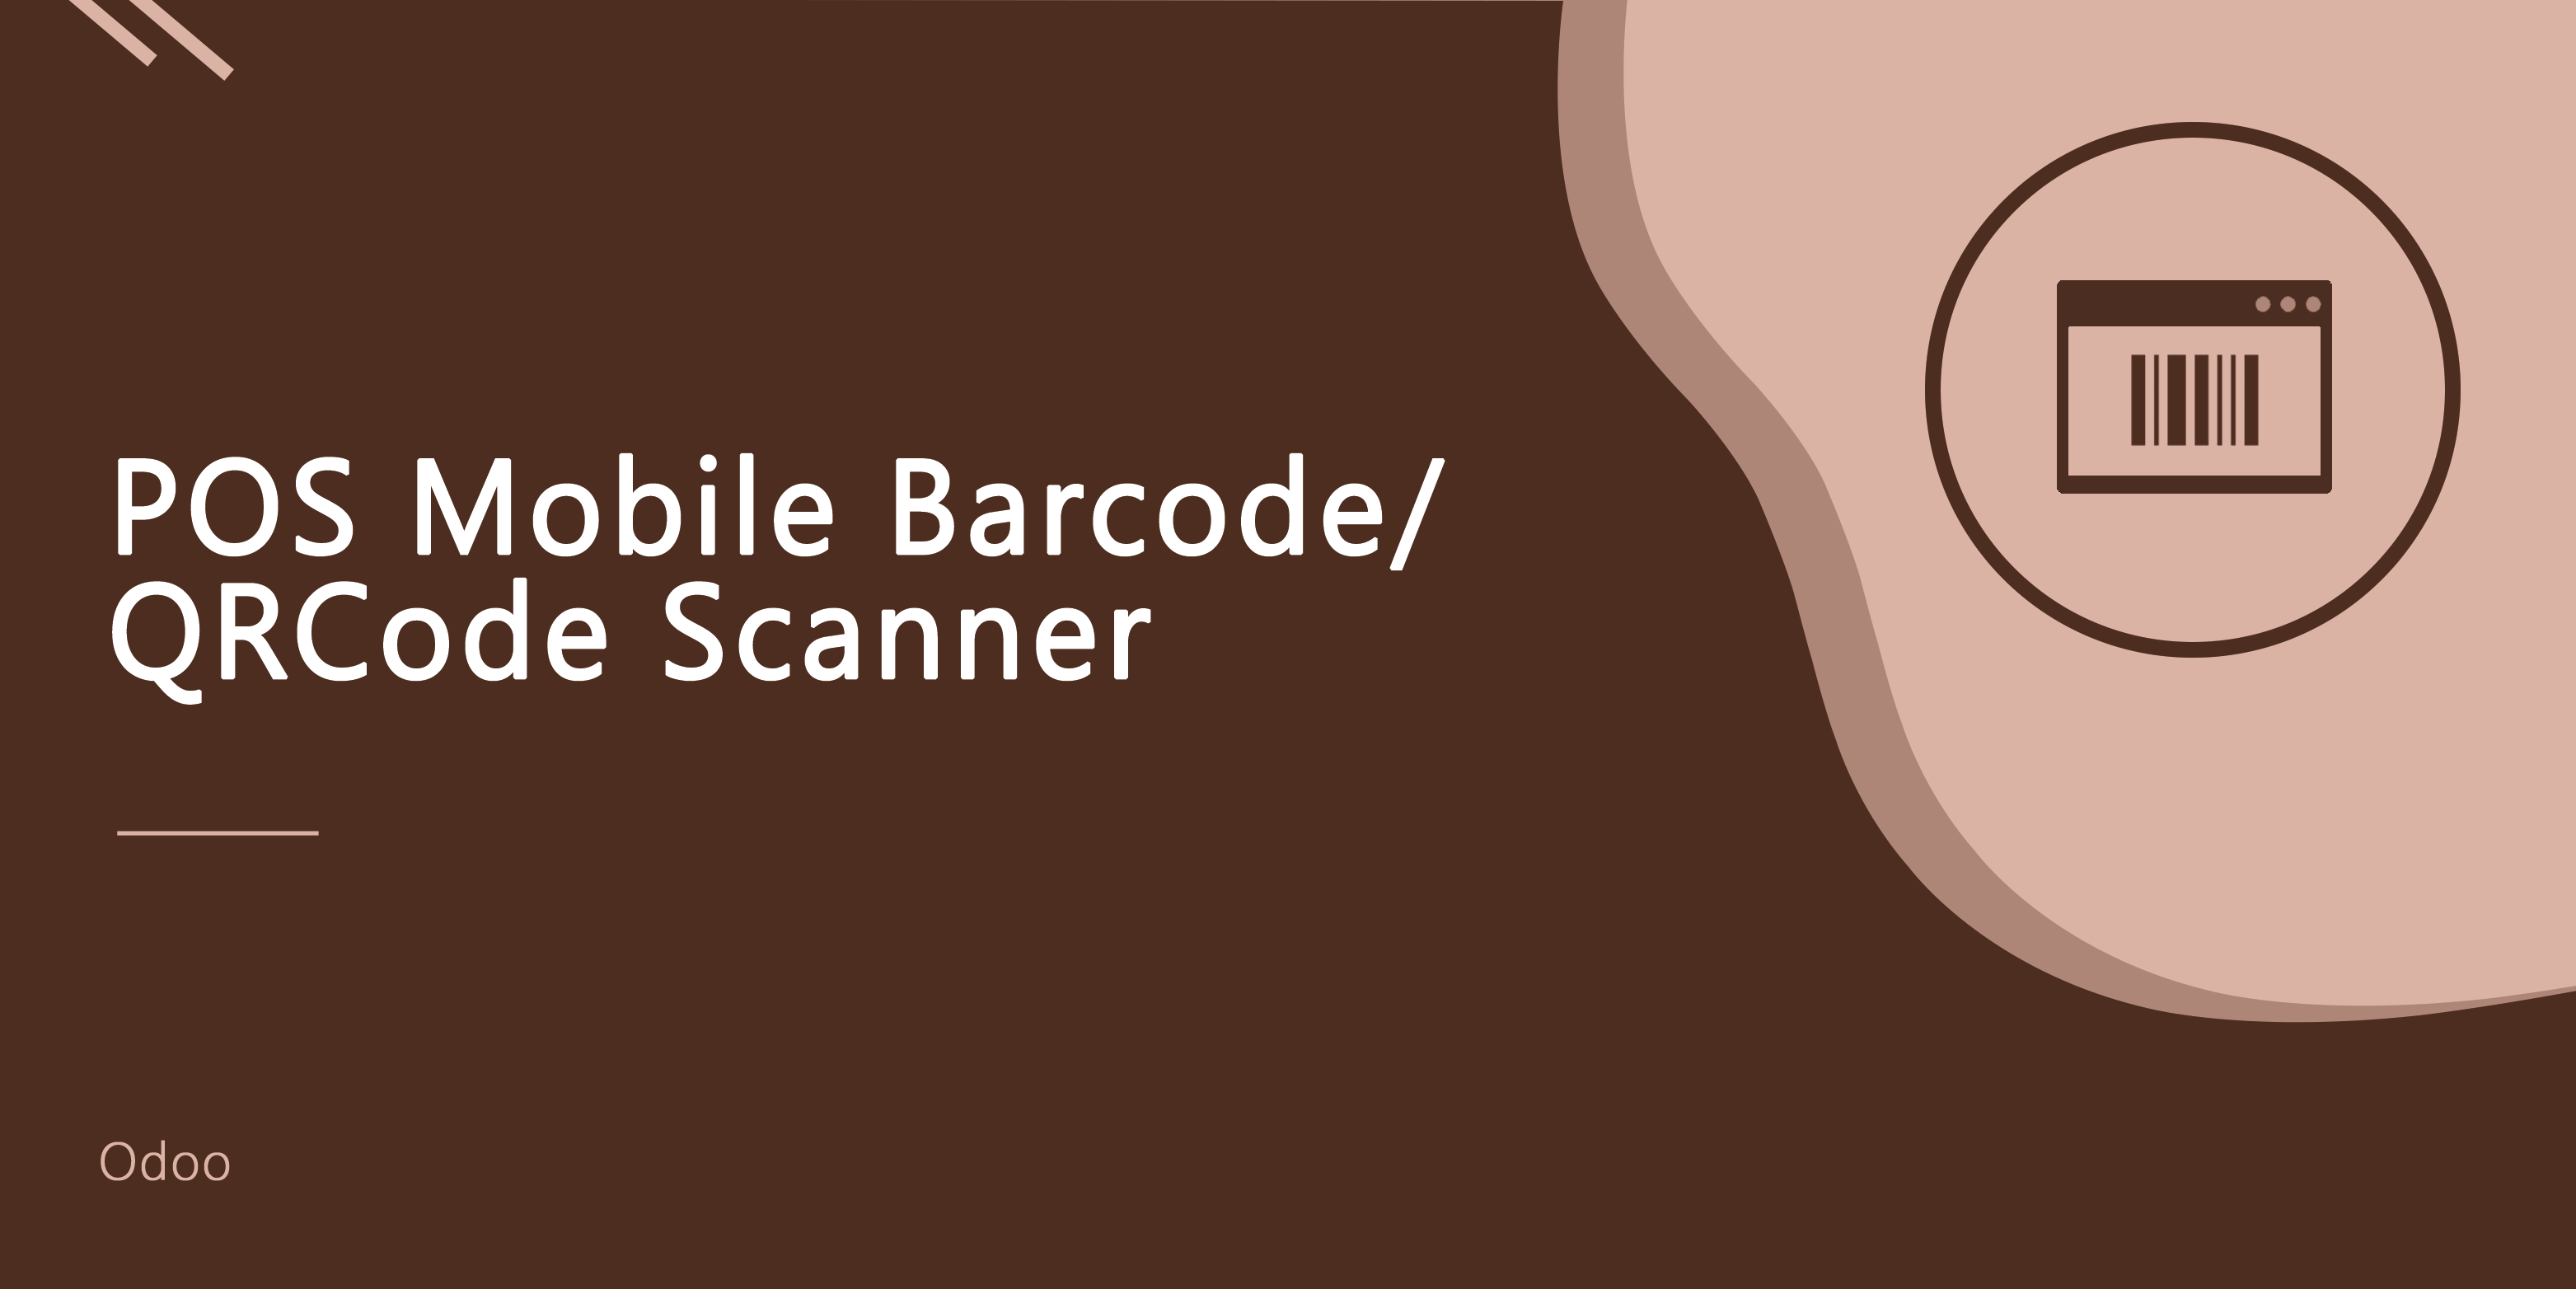 POS Mobile Barcode/QRCode Scanner